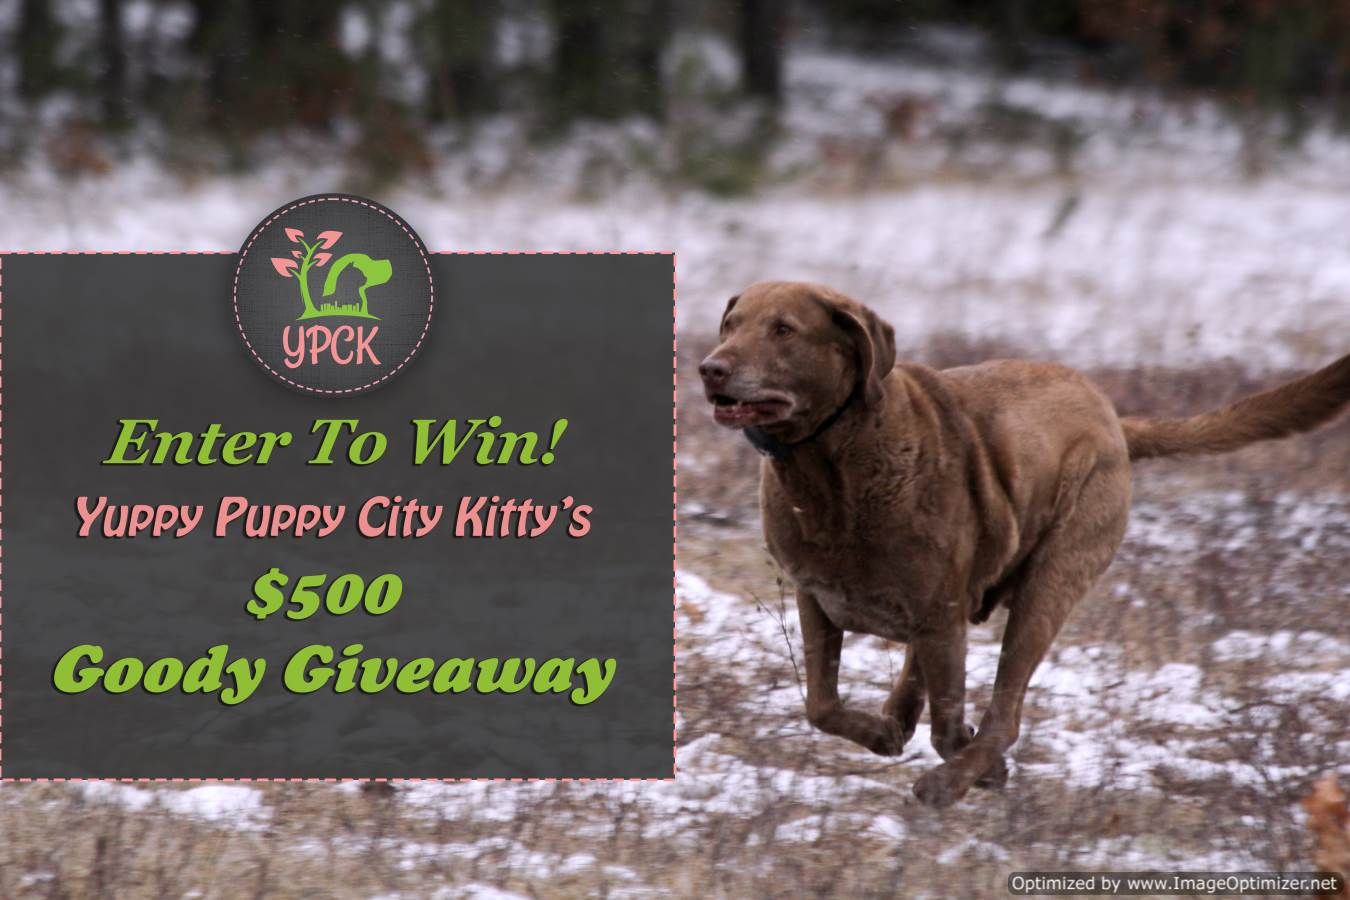 Yuppy Puppy City Kitty 500 Goody Giveaway Sponsored